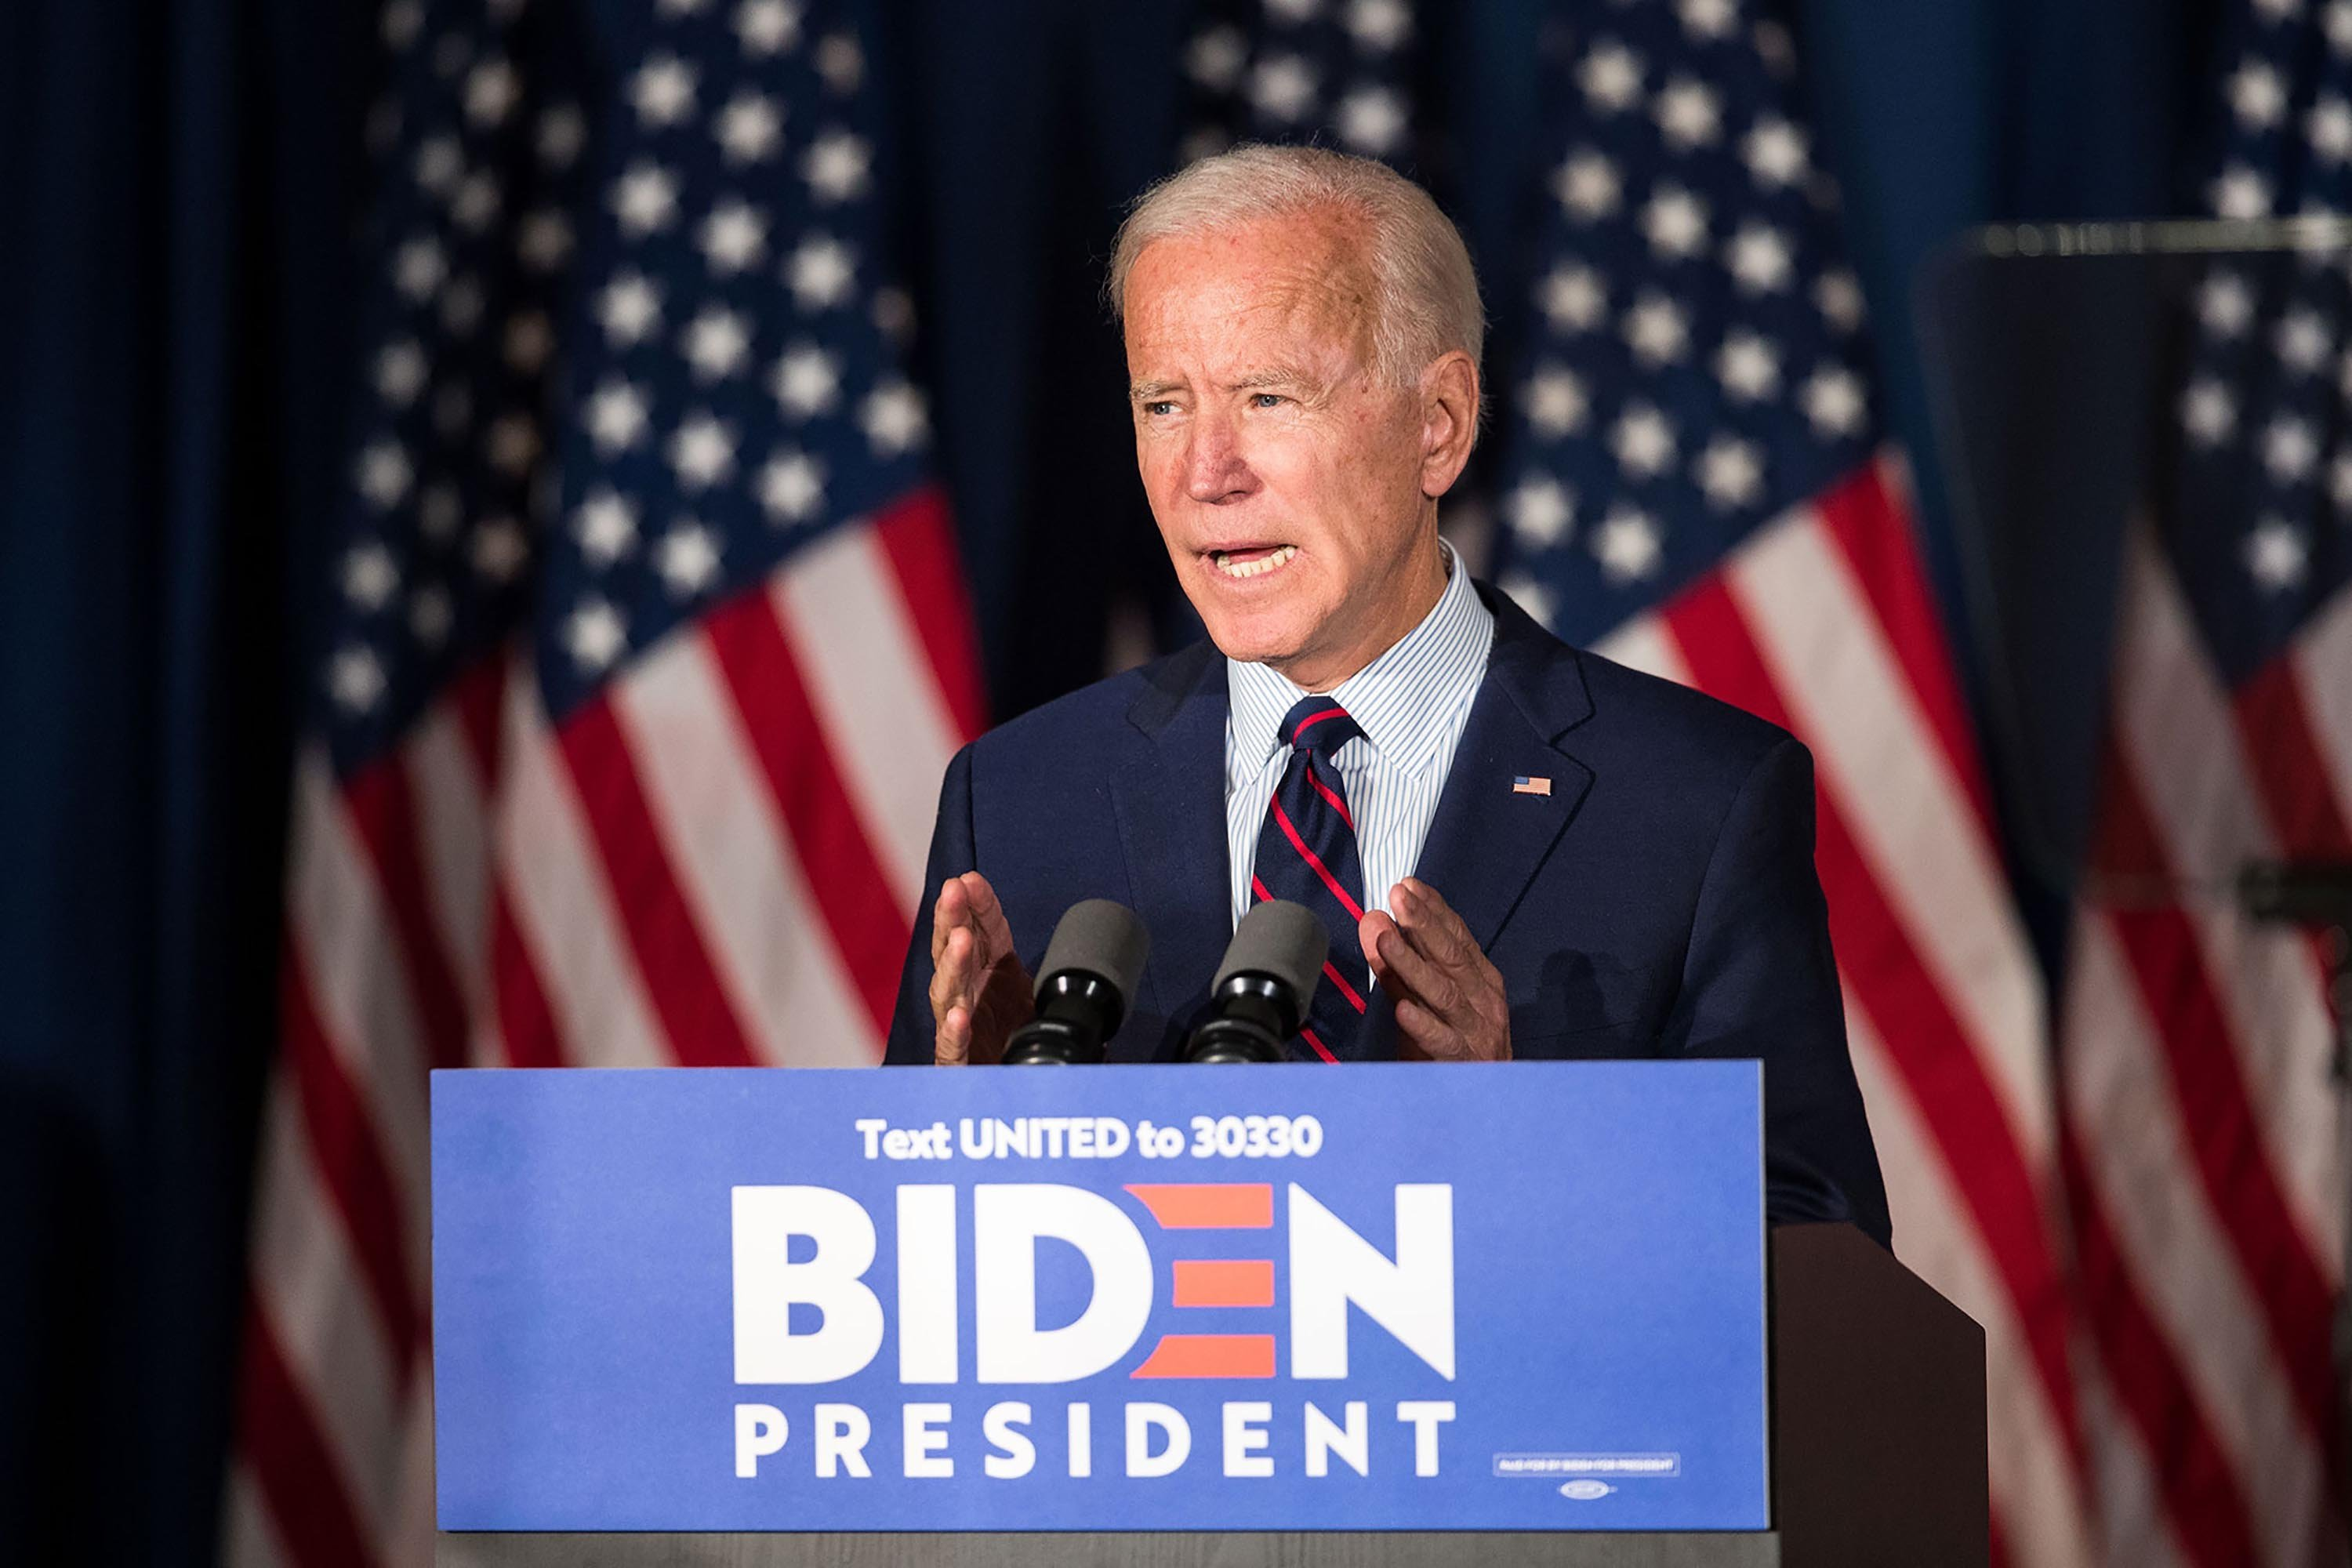 Biden allies intensify push for super PAC after lackluster fundraising quarter